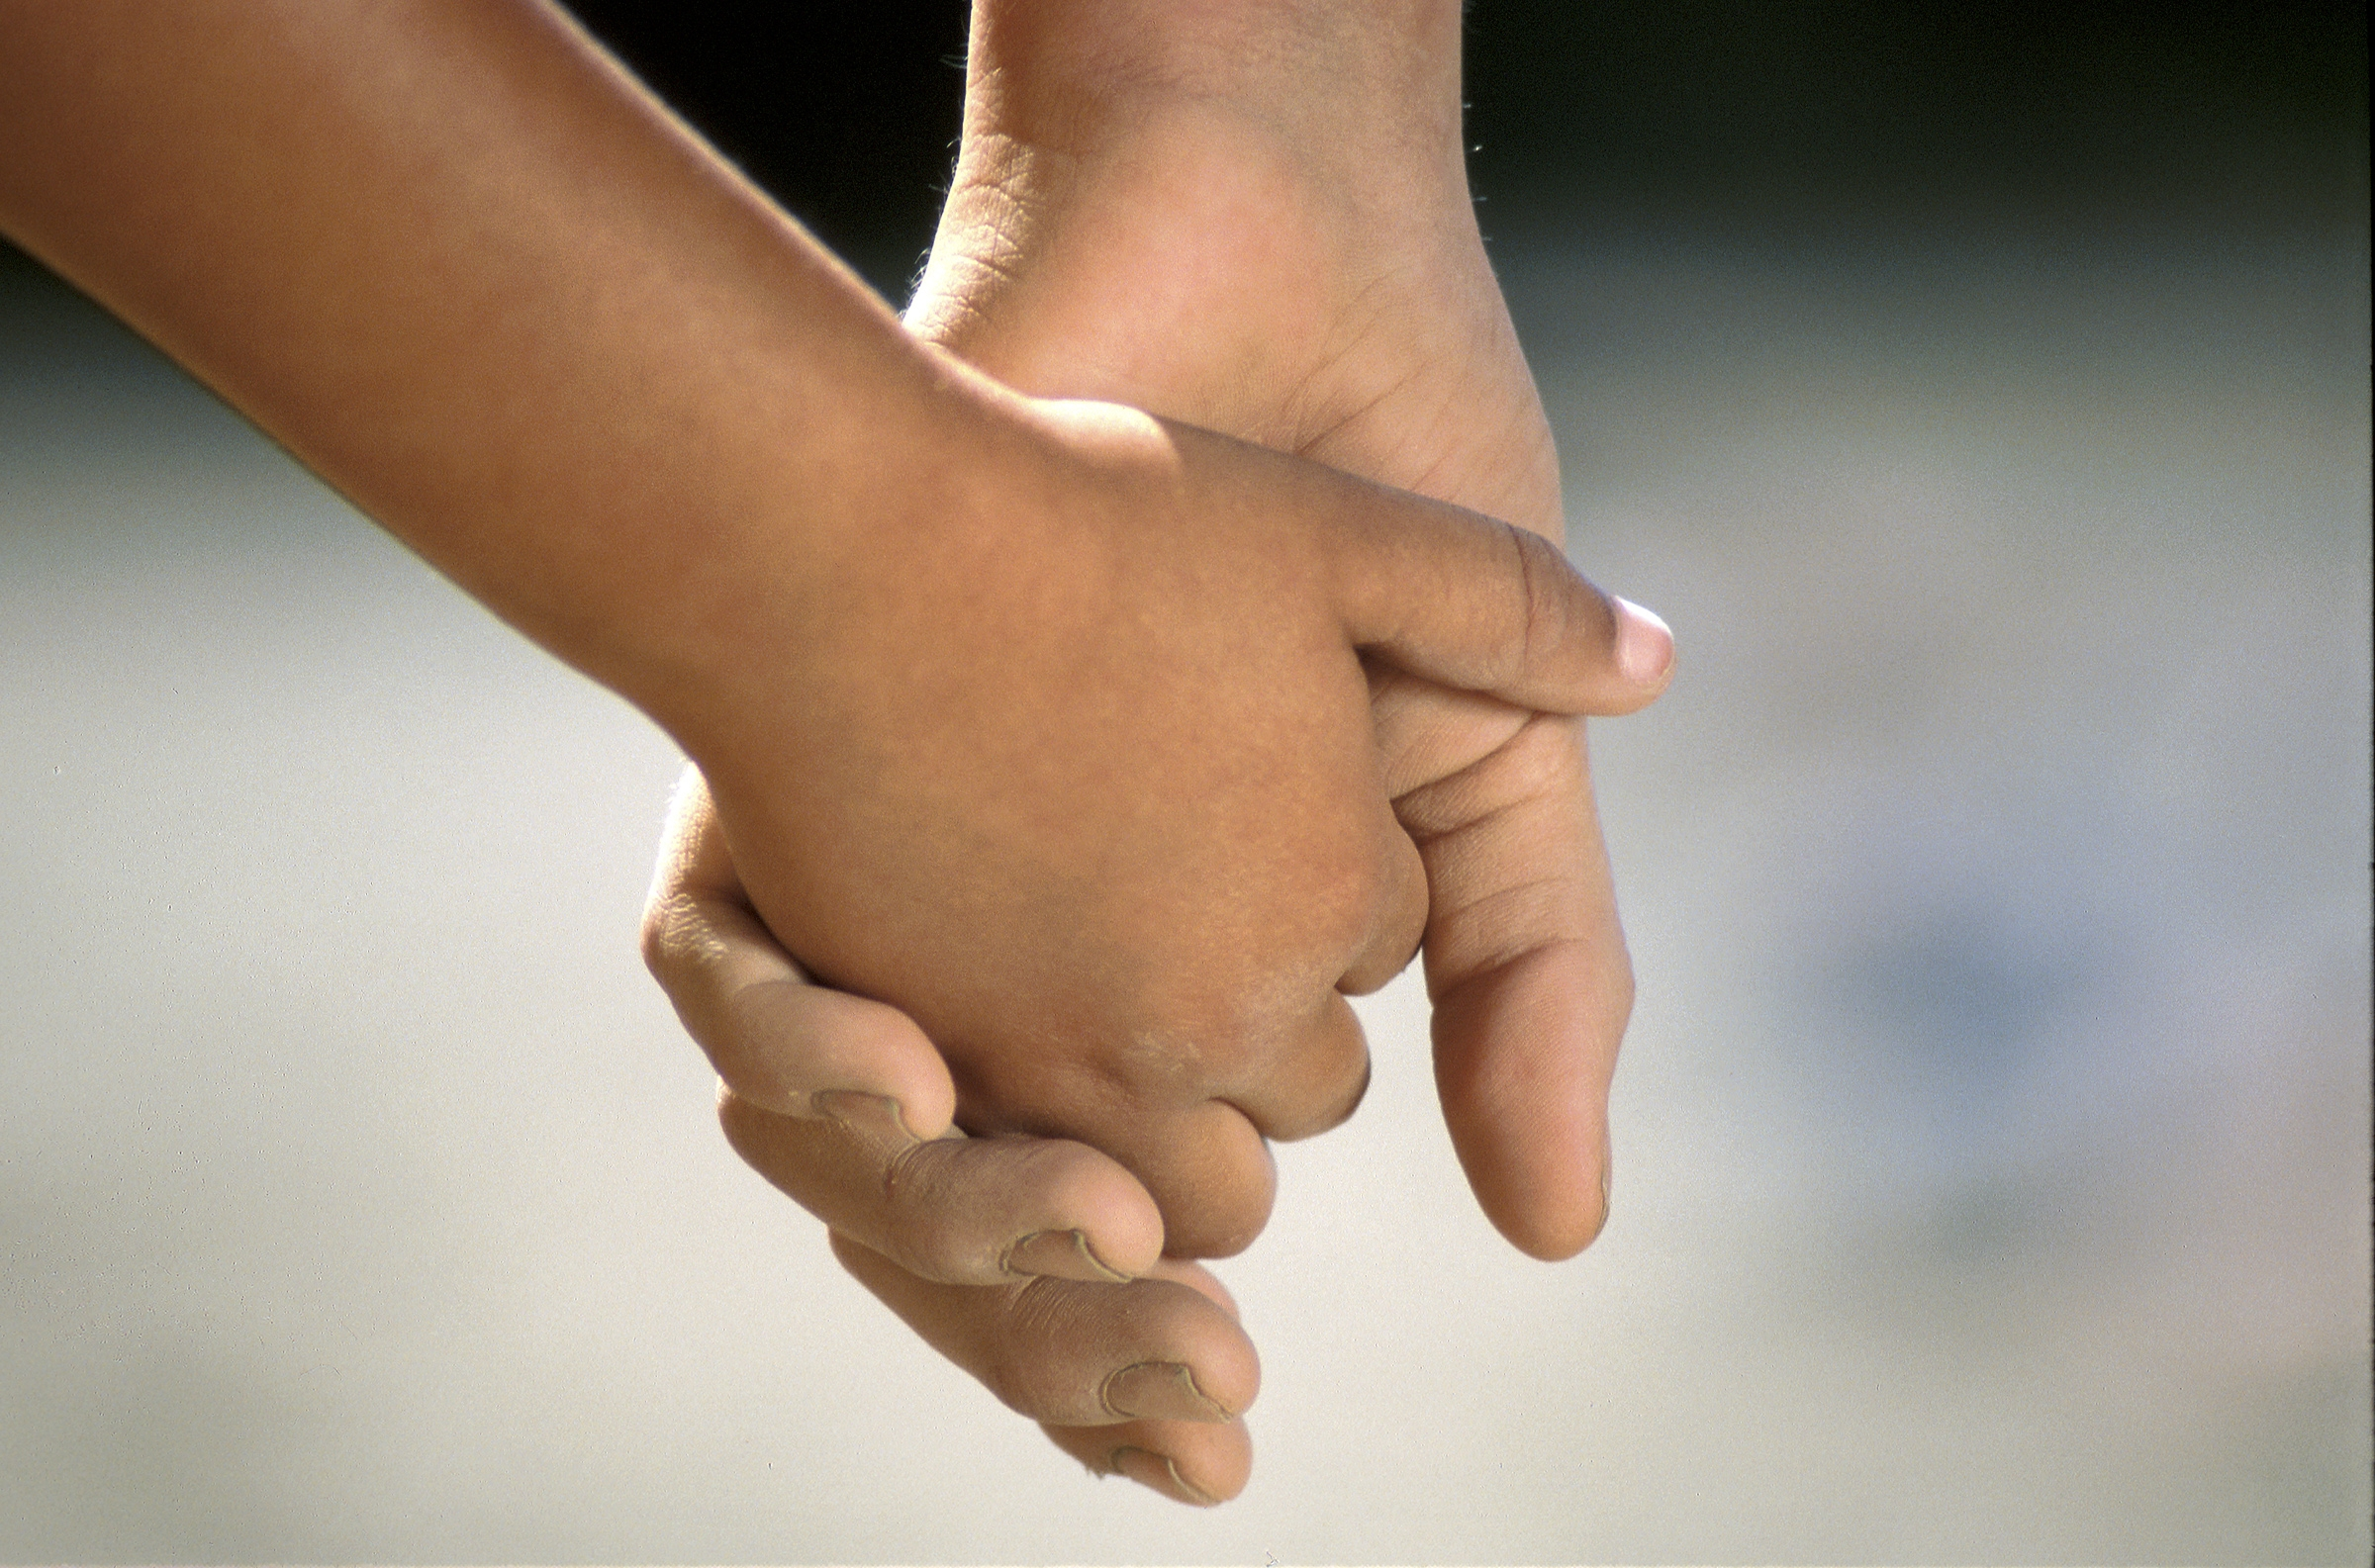 Children's social care image of two children holding hands